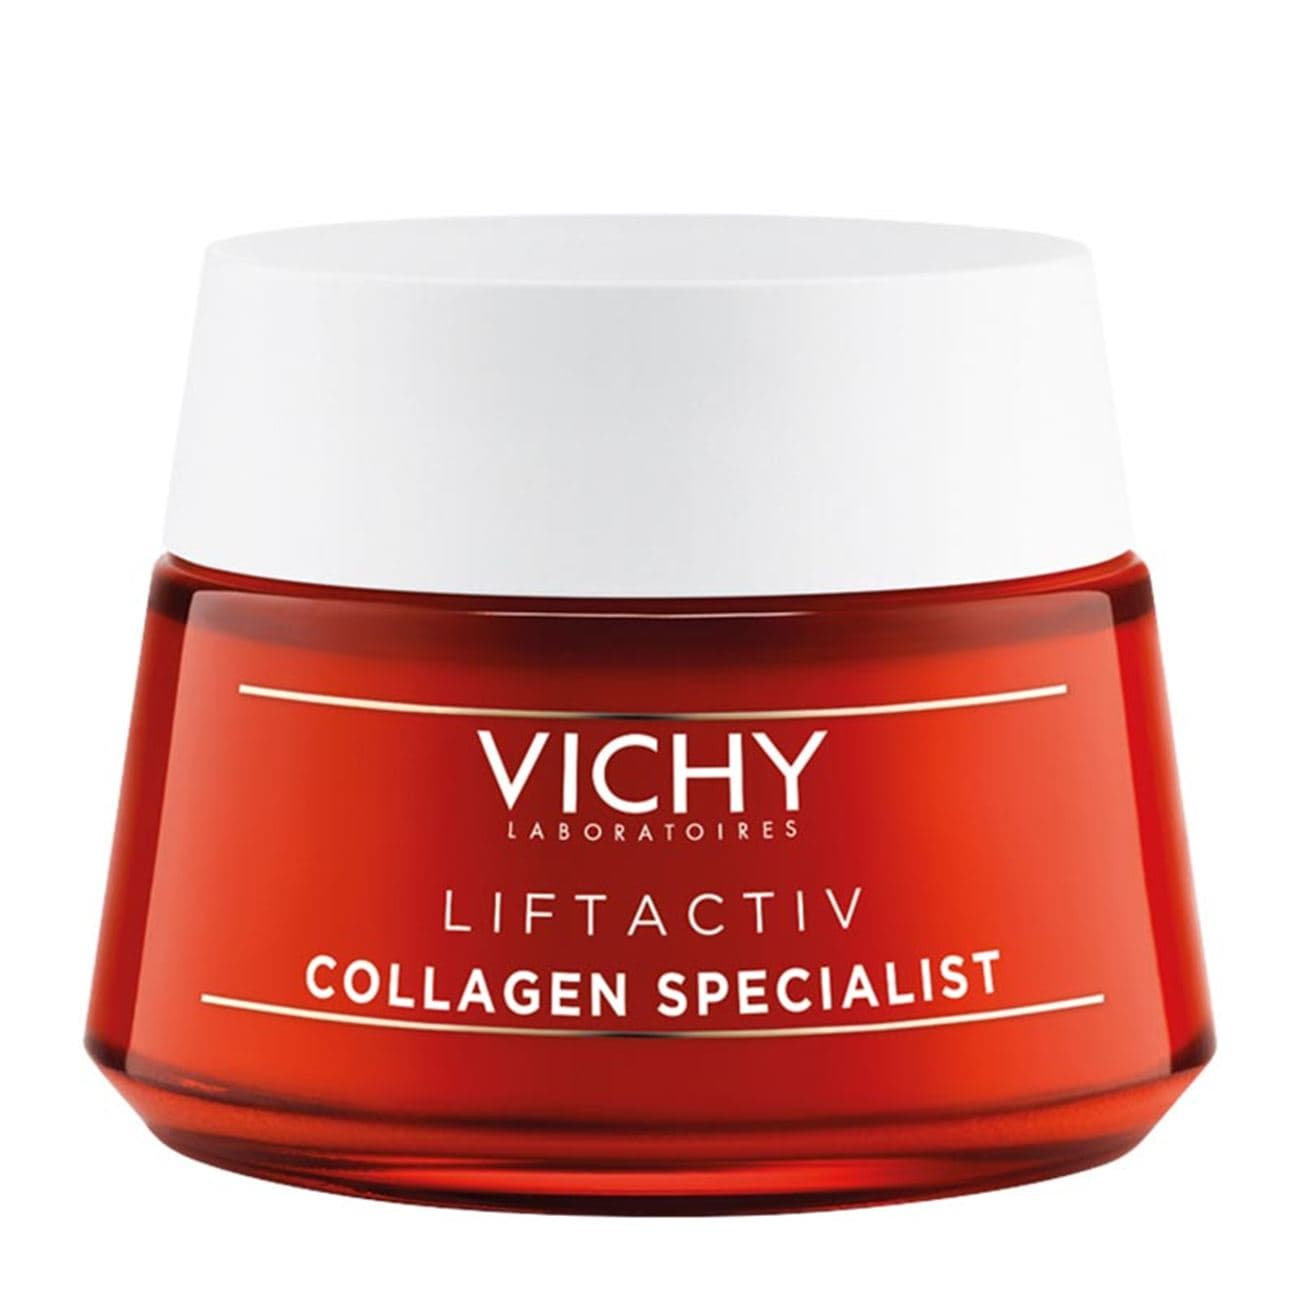 Liftactiv Collagen Specialist Face Cream